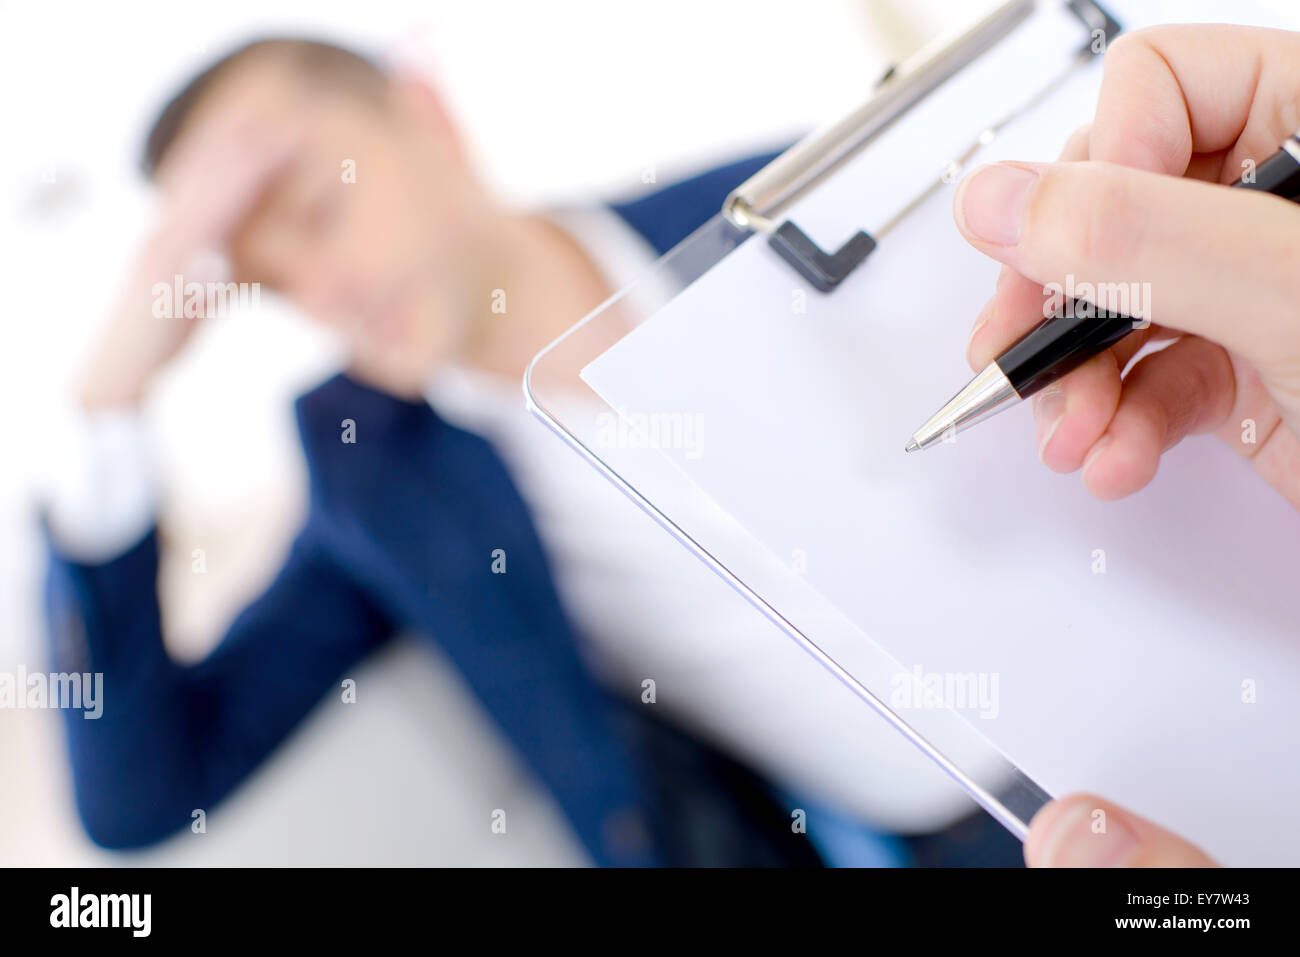 Man behind clipboard - Stock Image